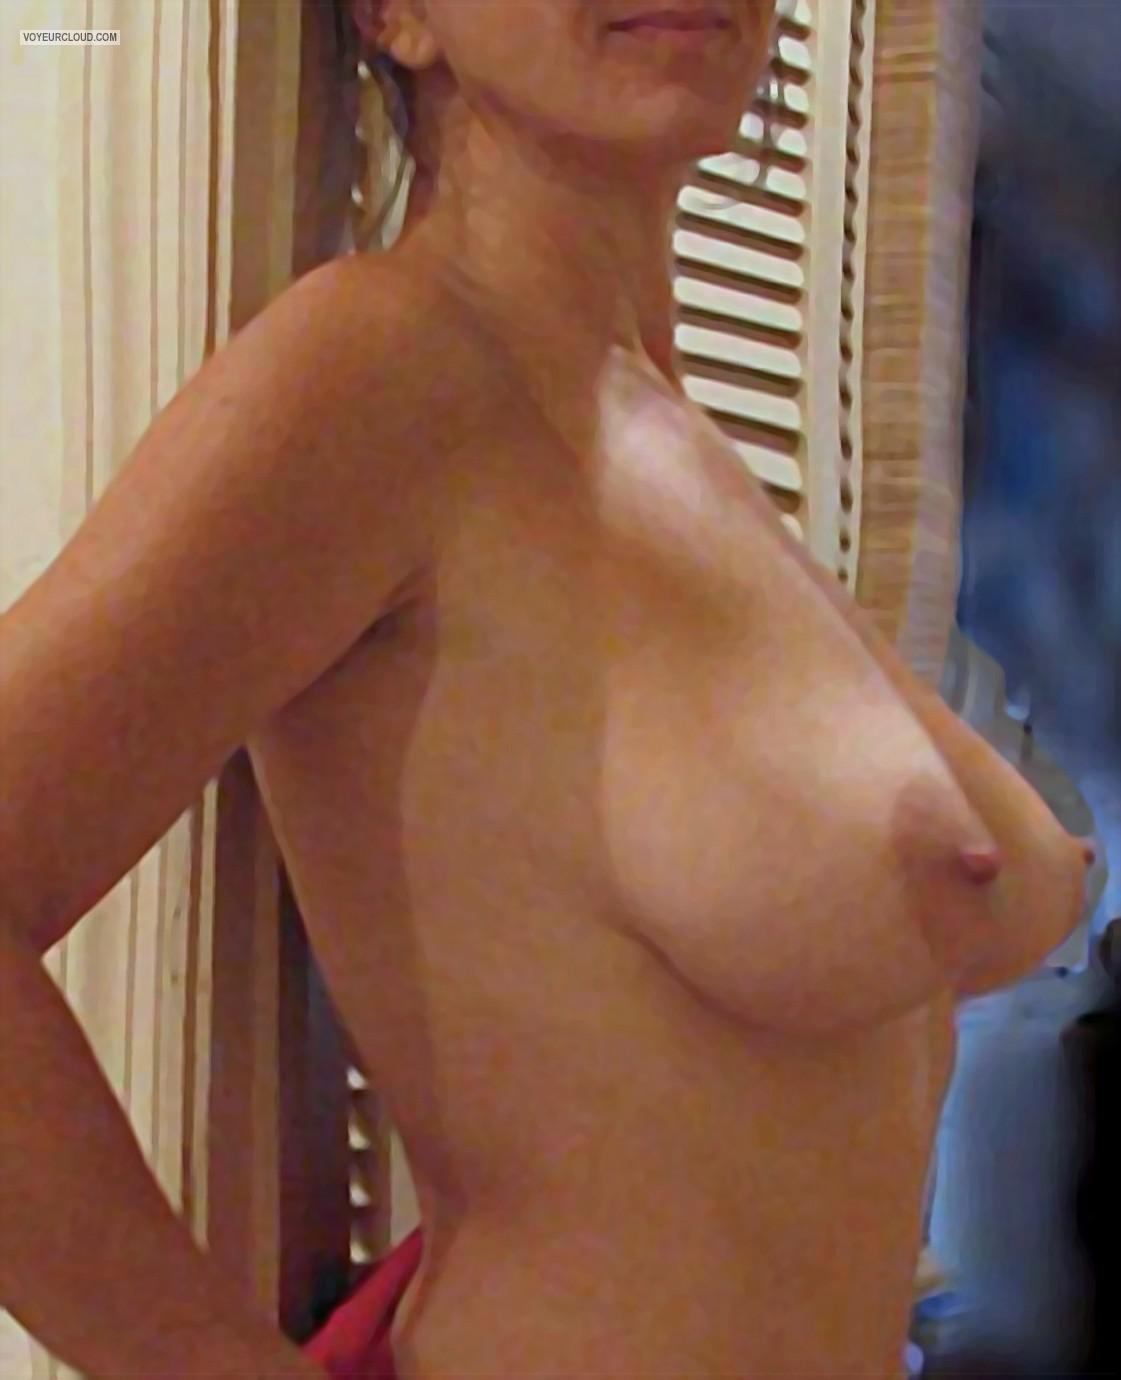 Tit Flash: Wife's Big Tits - Lovelee from United States